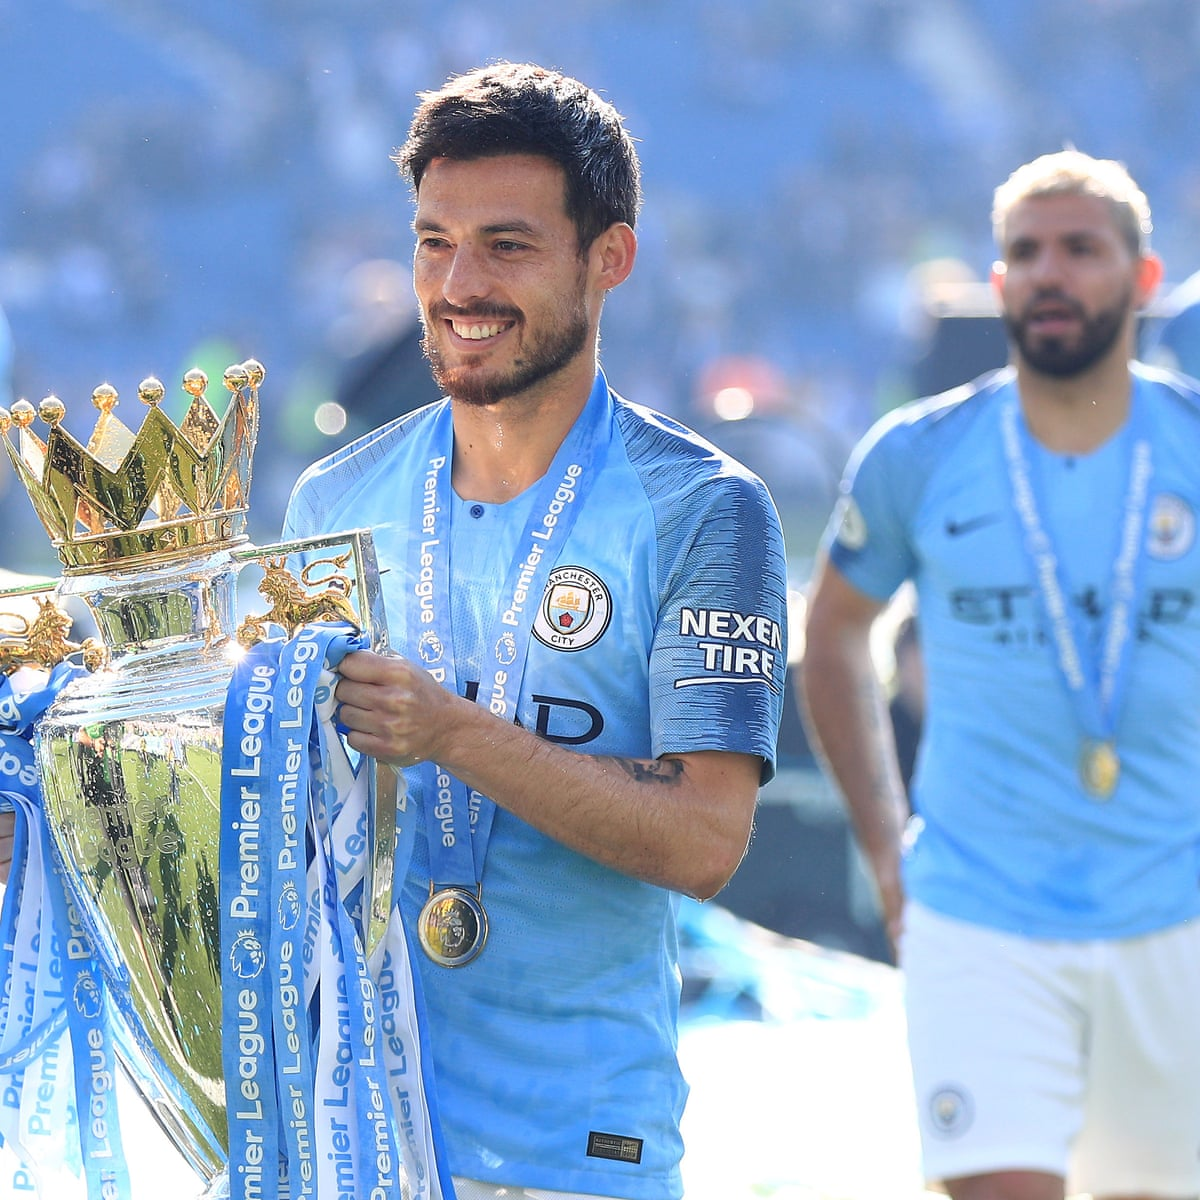 David Silva reflects on Manchester City career beyond his 'wildest dreams'  | Manchester City | The Guardian